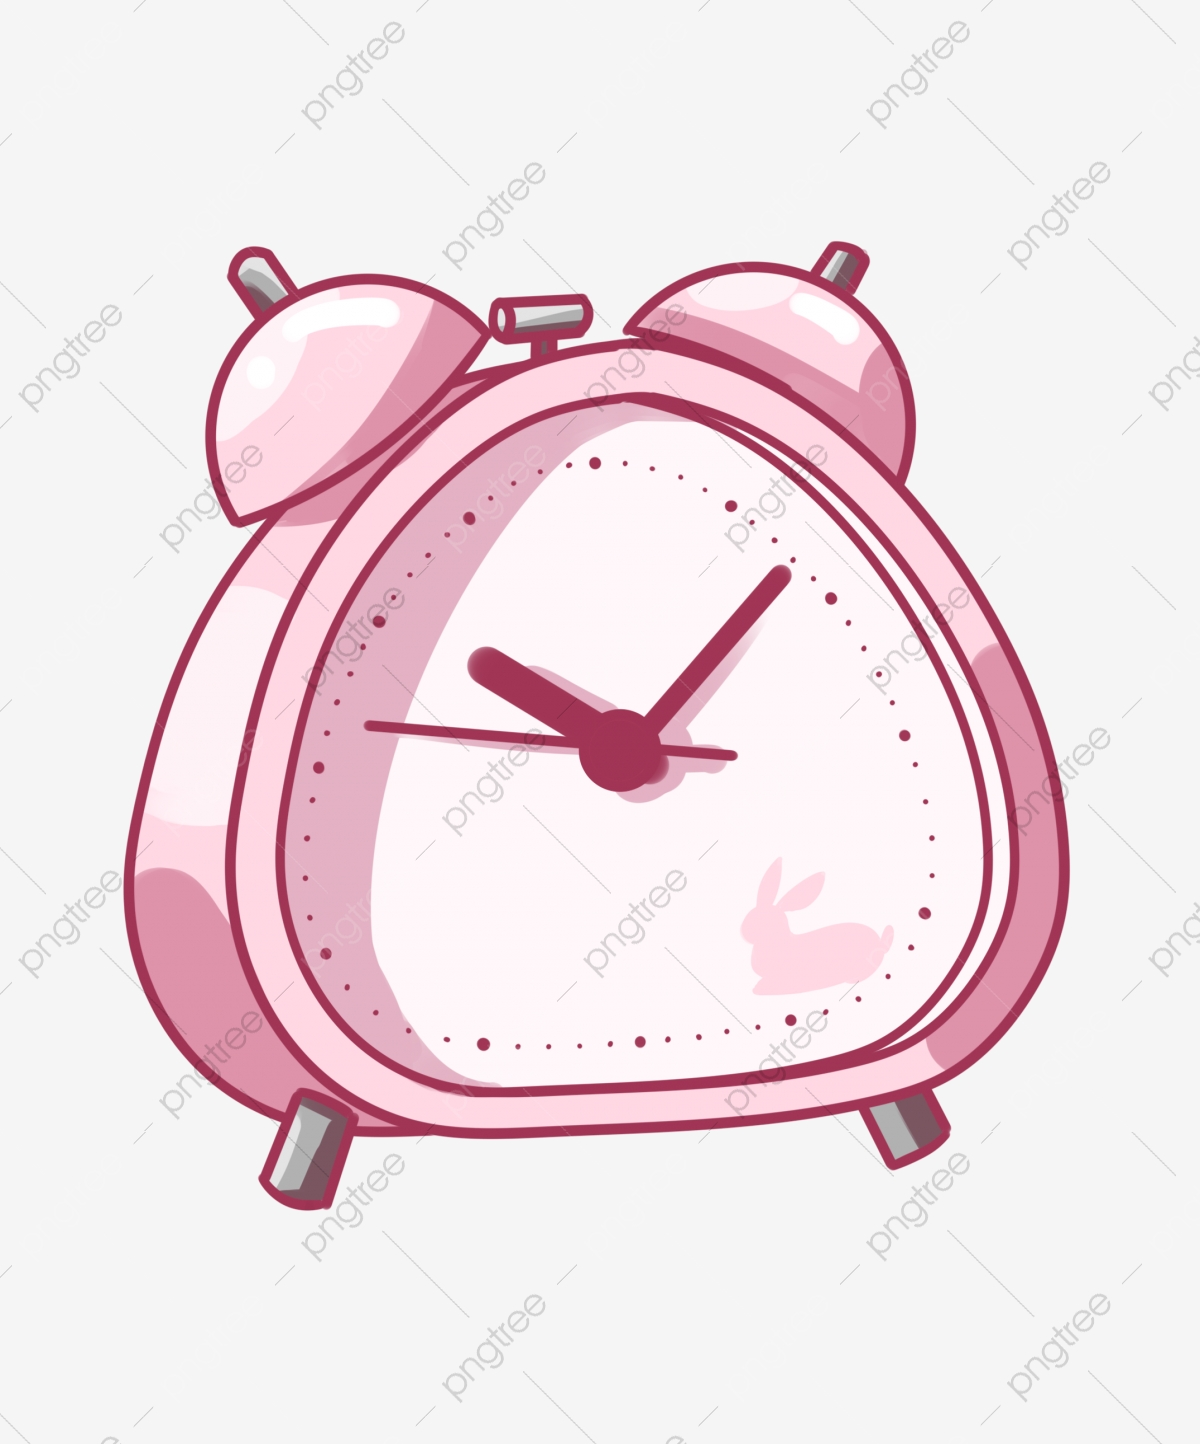 Vector Baseball Alarm Clock, Baseball Clipart, Clock Clipart, Alarm.